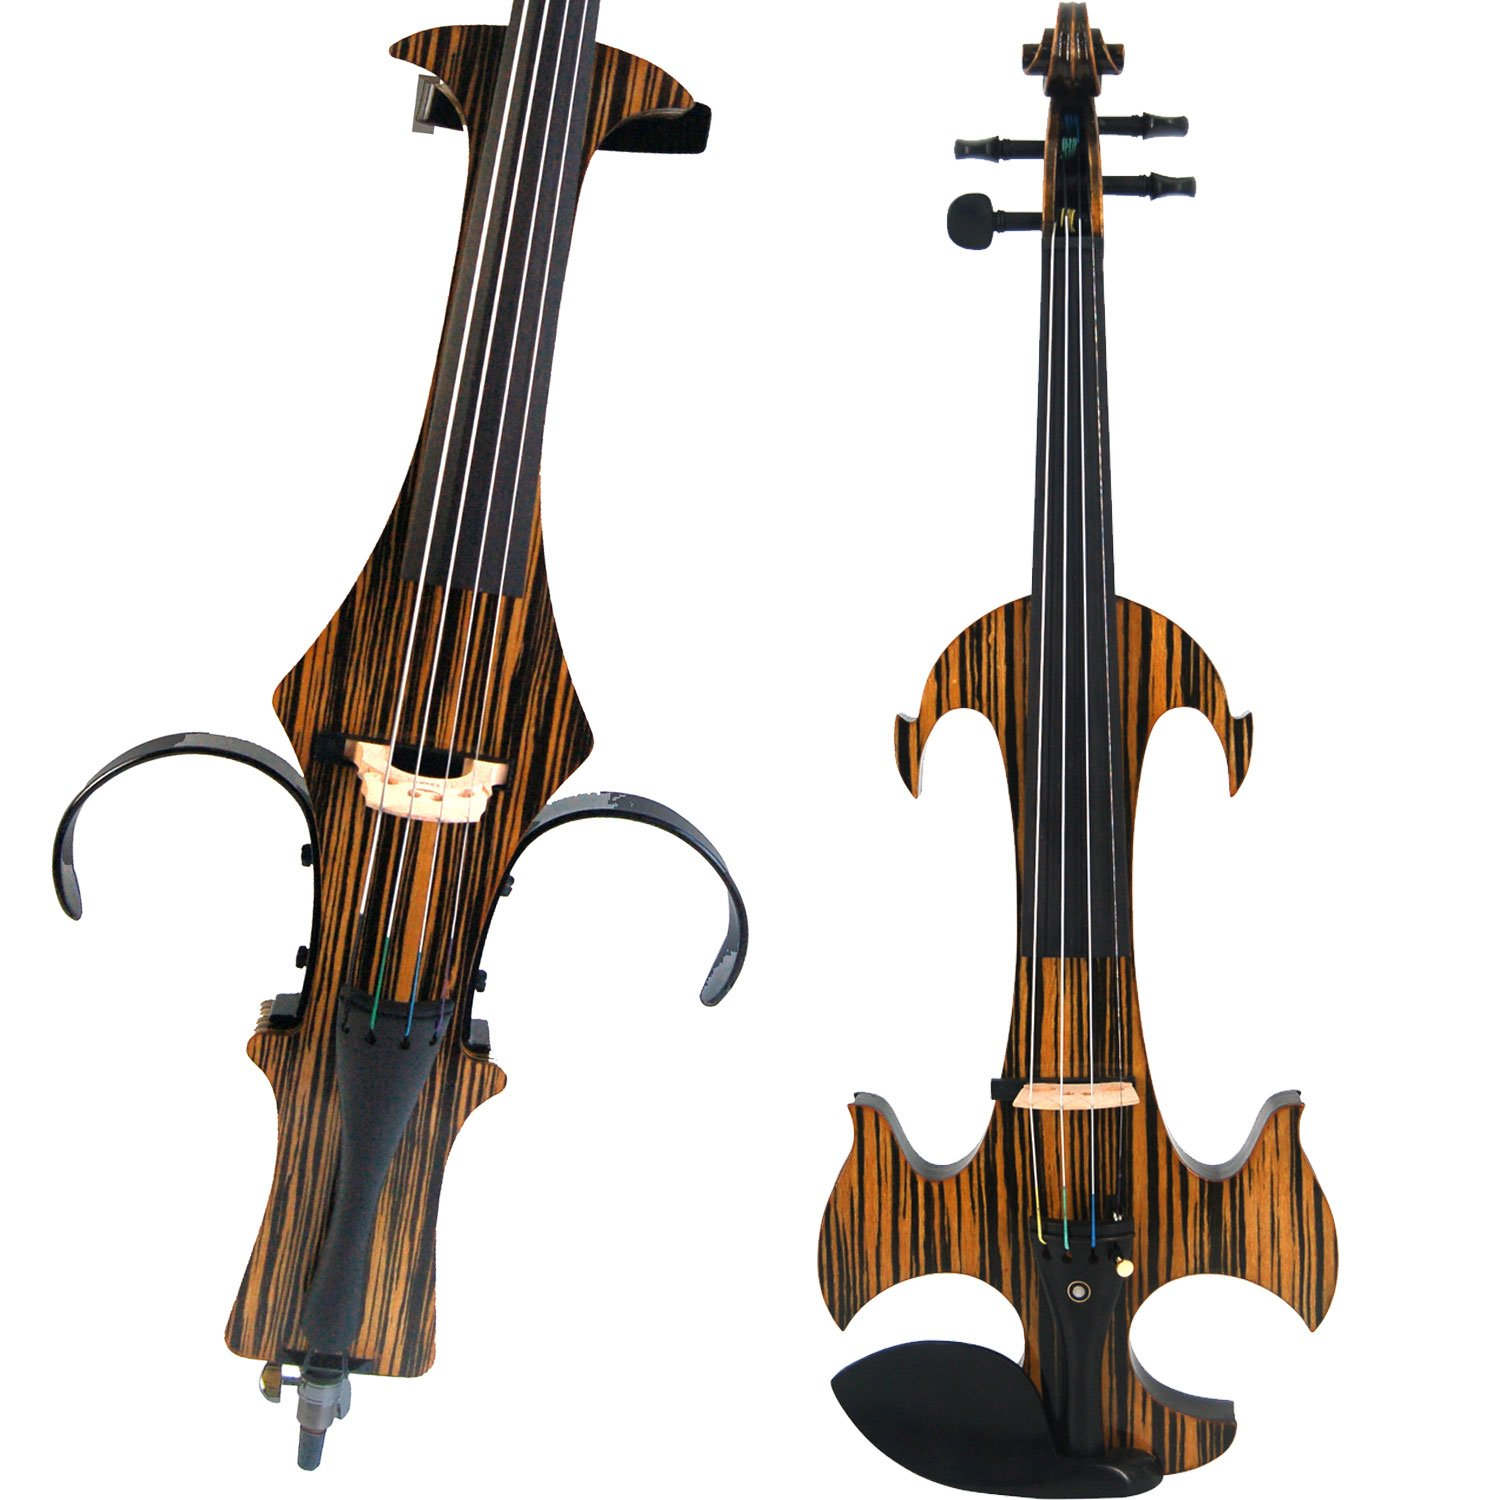 Aliyes Handmade Professional Solid Wood Electric Cello 4/4 Full Size Silent Electric Cello-N1805